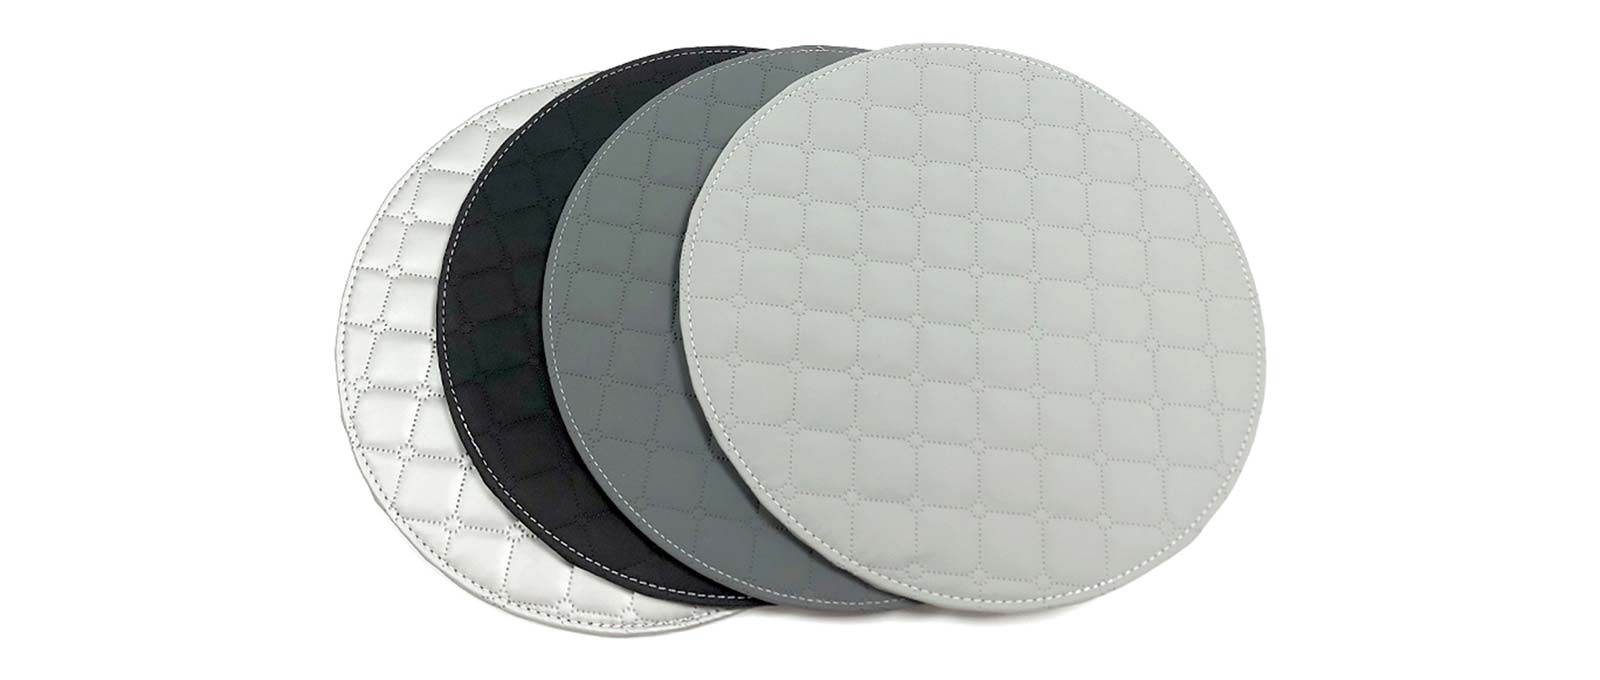 Our faux leather range